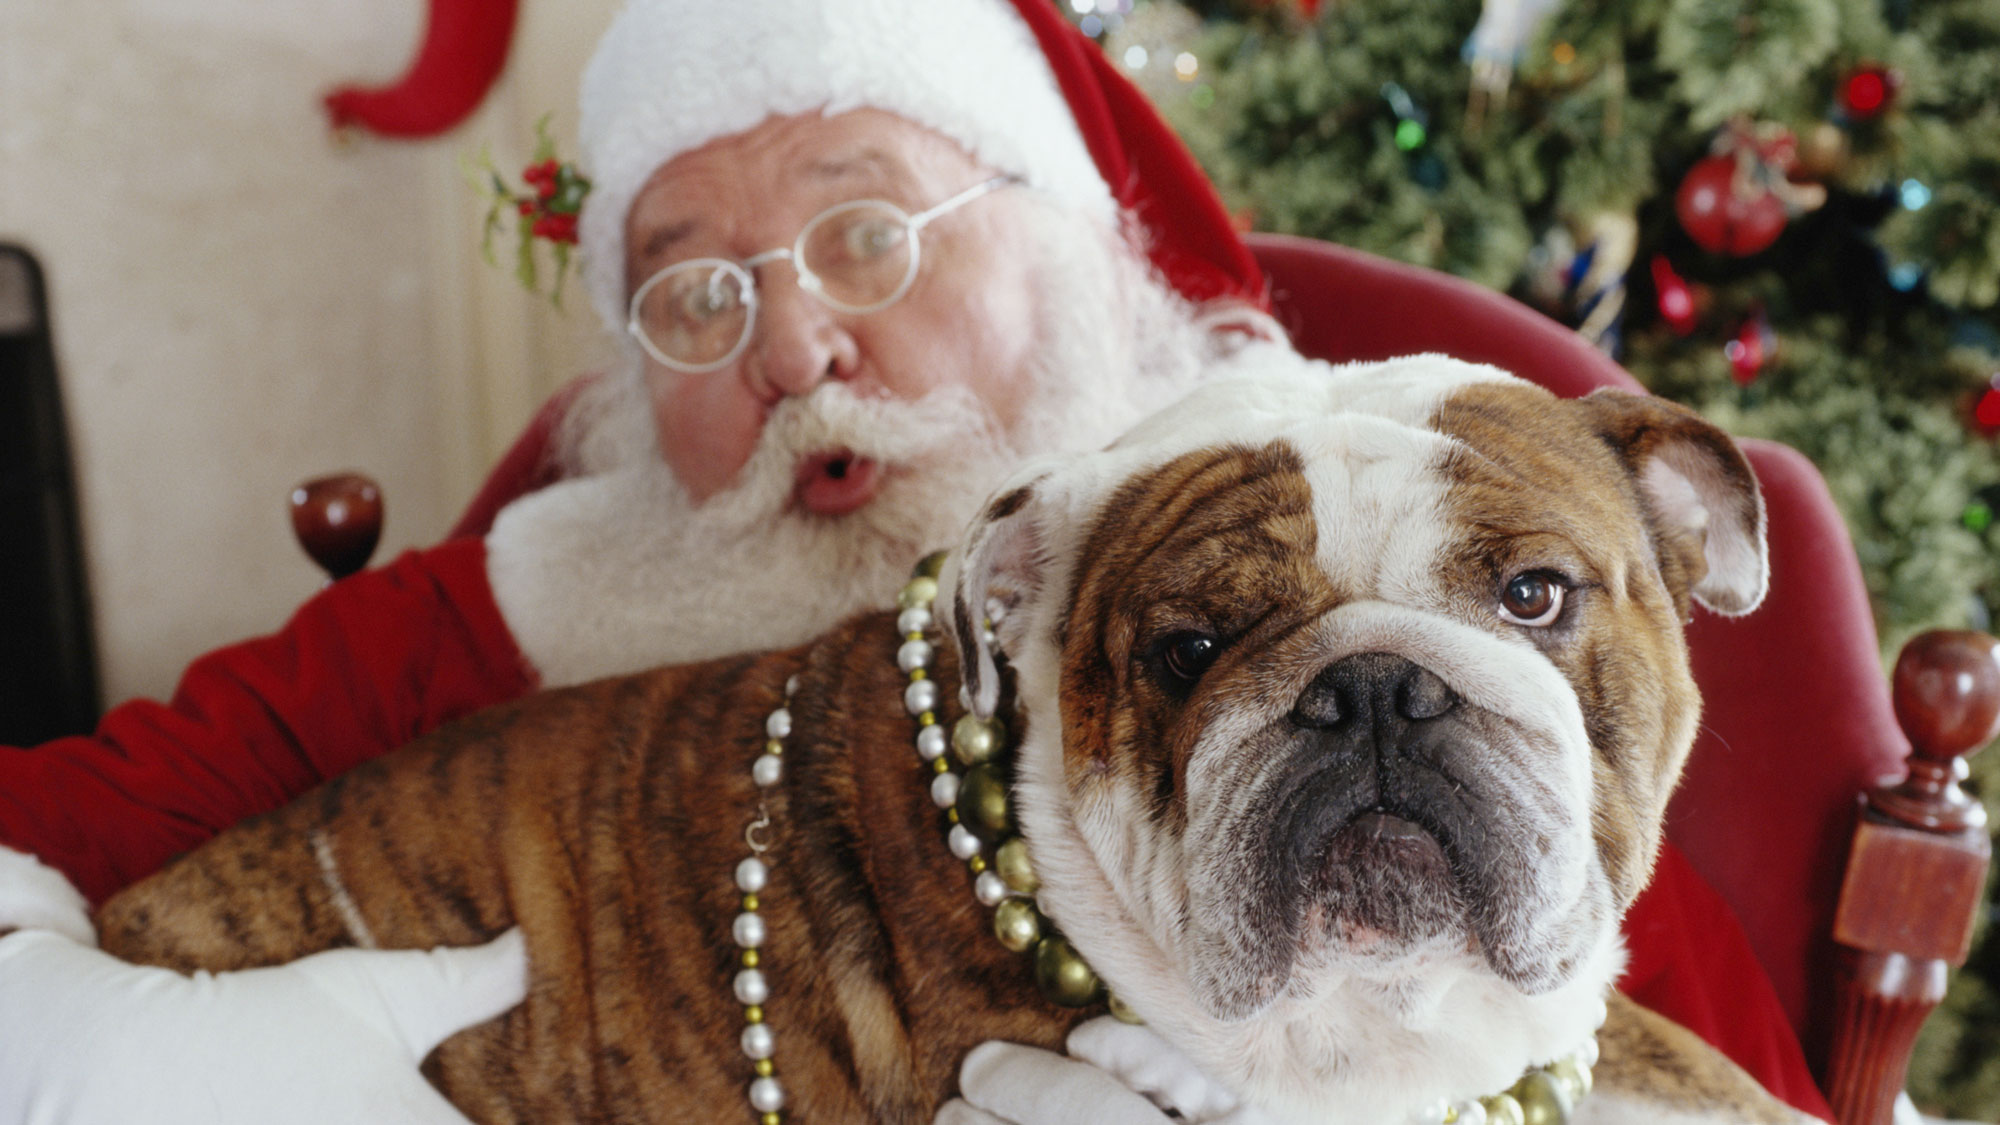 English bulldog lying on Santa's lap. GETTY IMAGES/LWA.